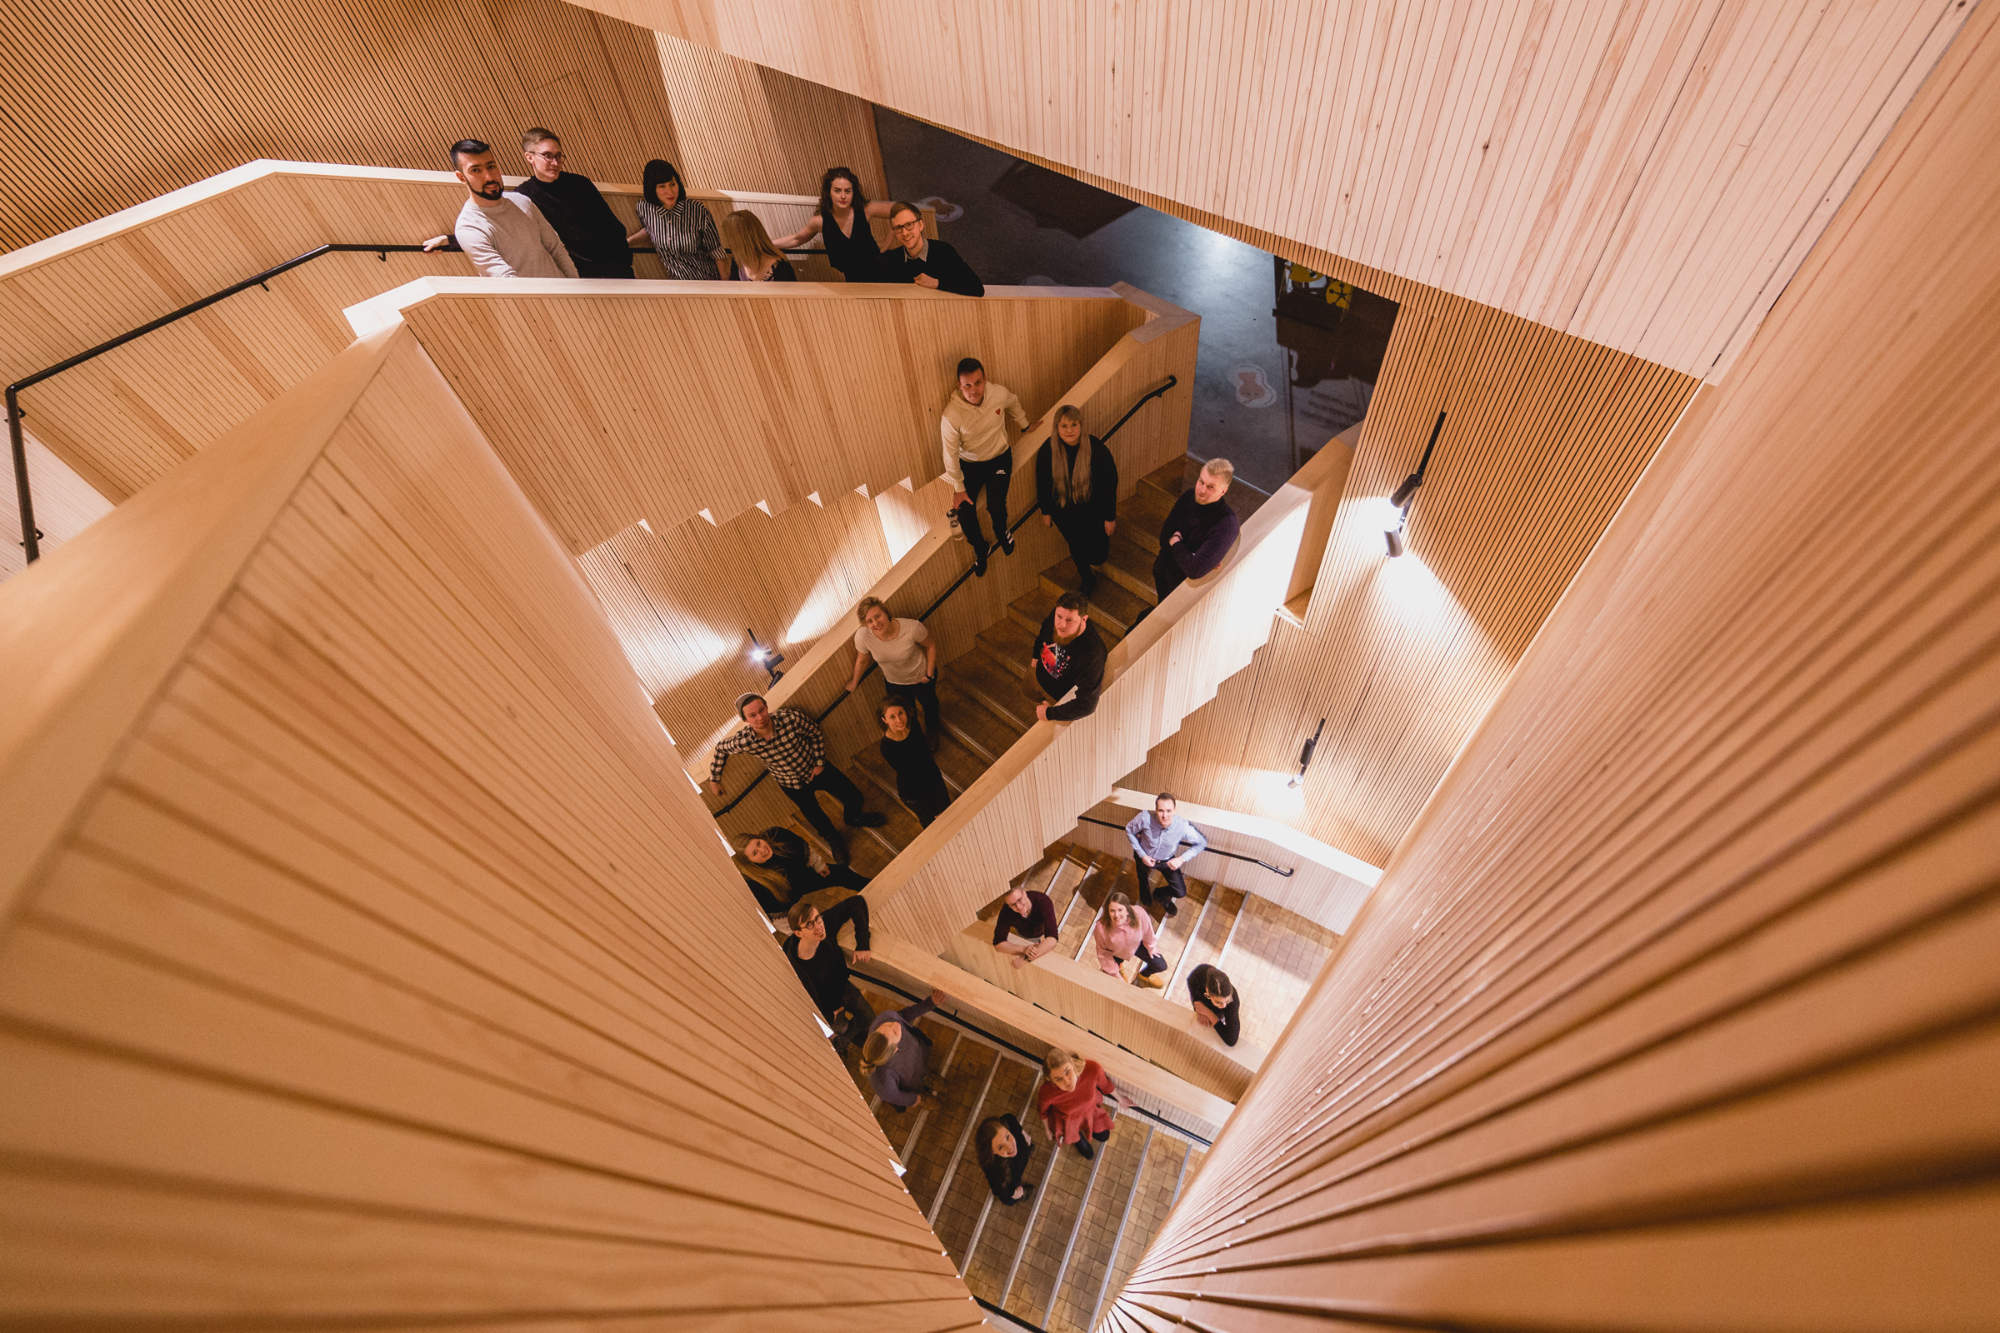 A photograph taken from above a staircase where people are standing.